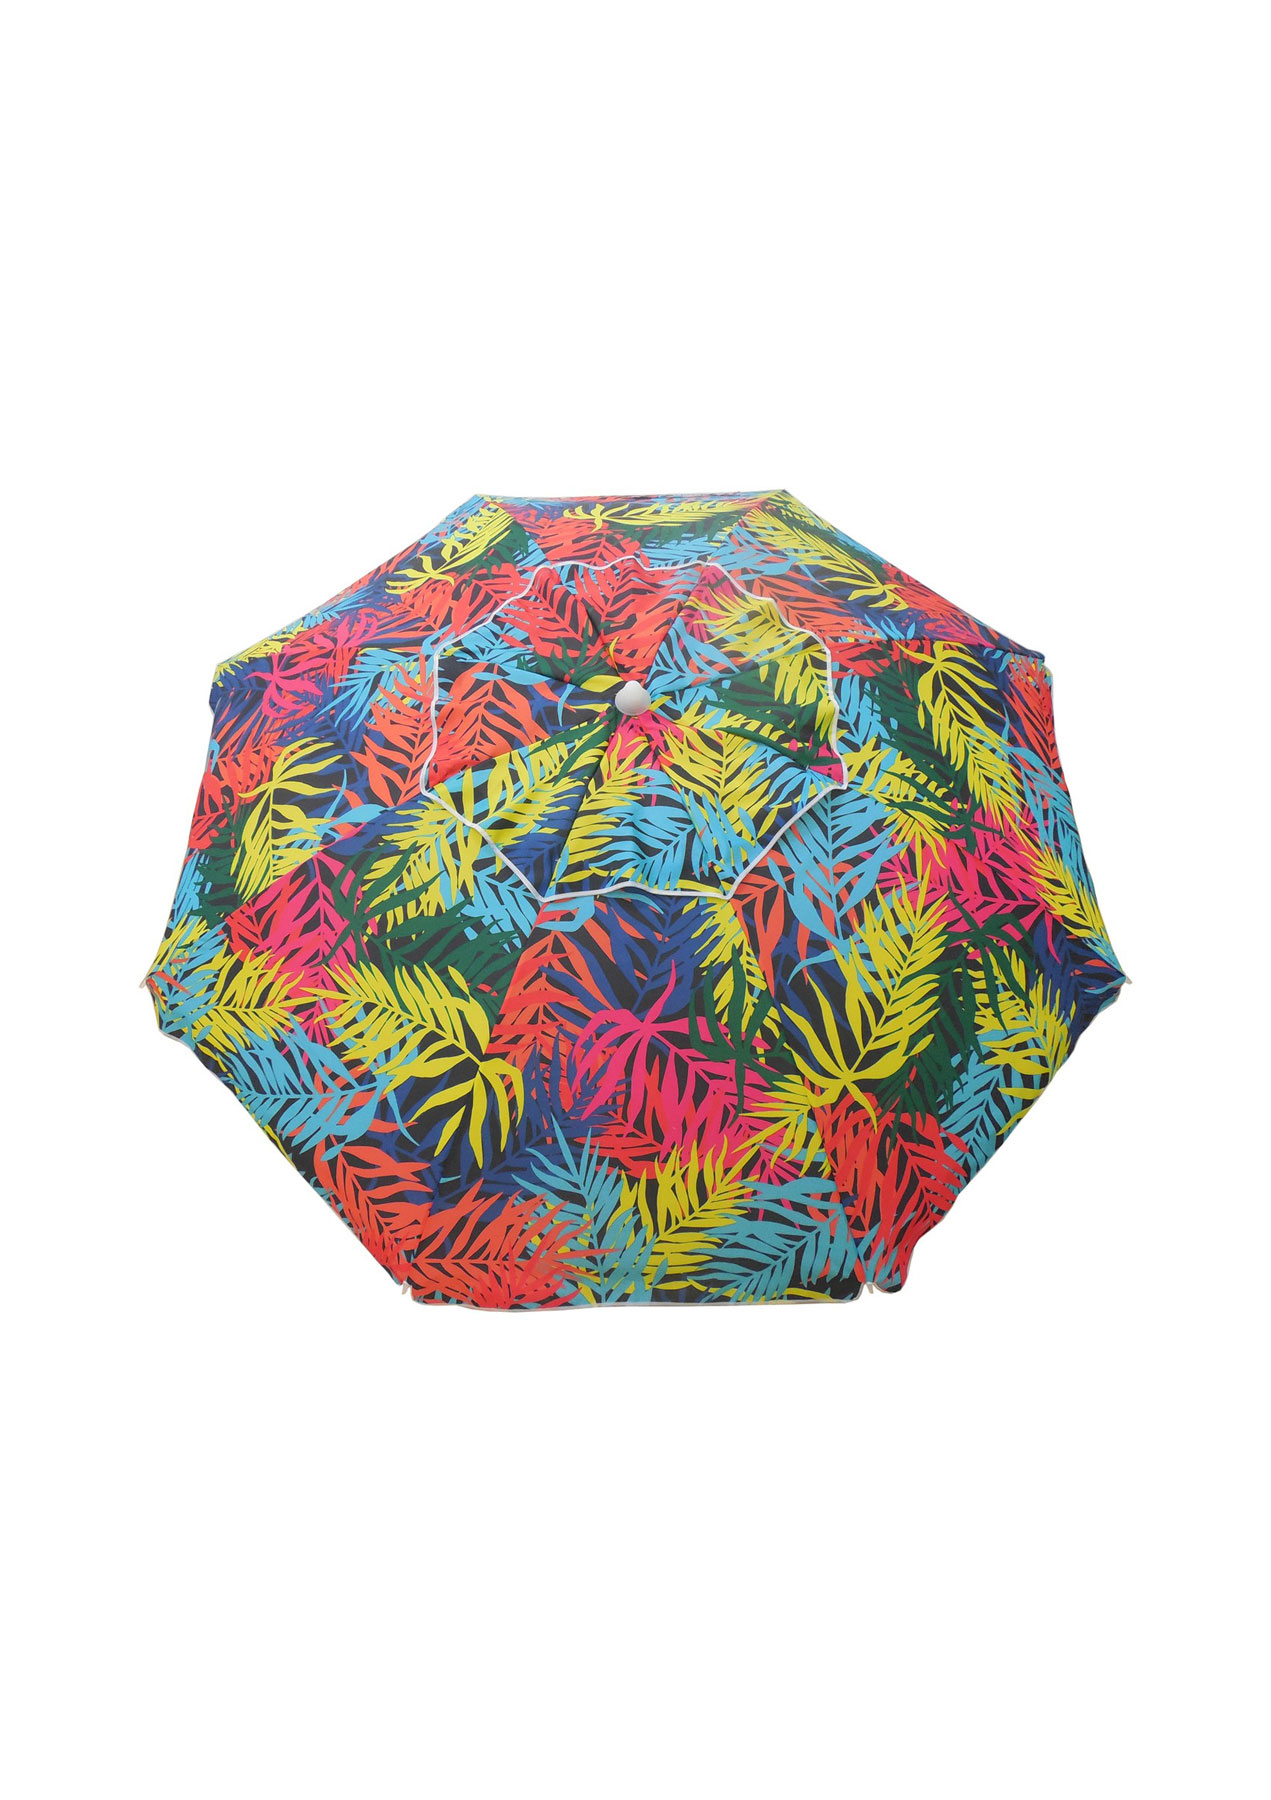 Target 7' Beach Umbrella with Palm Trees